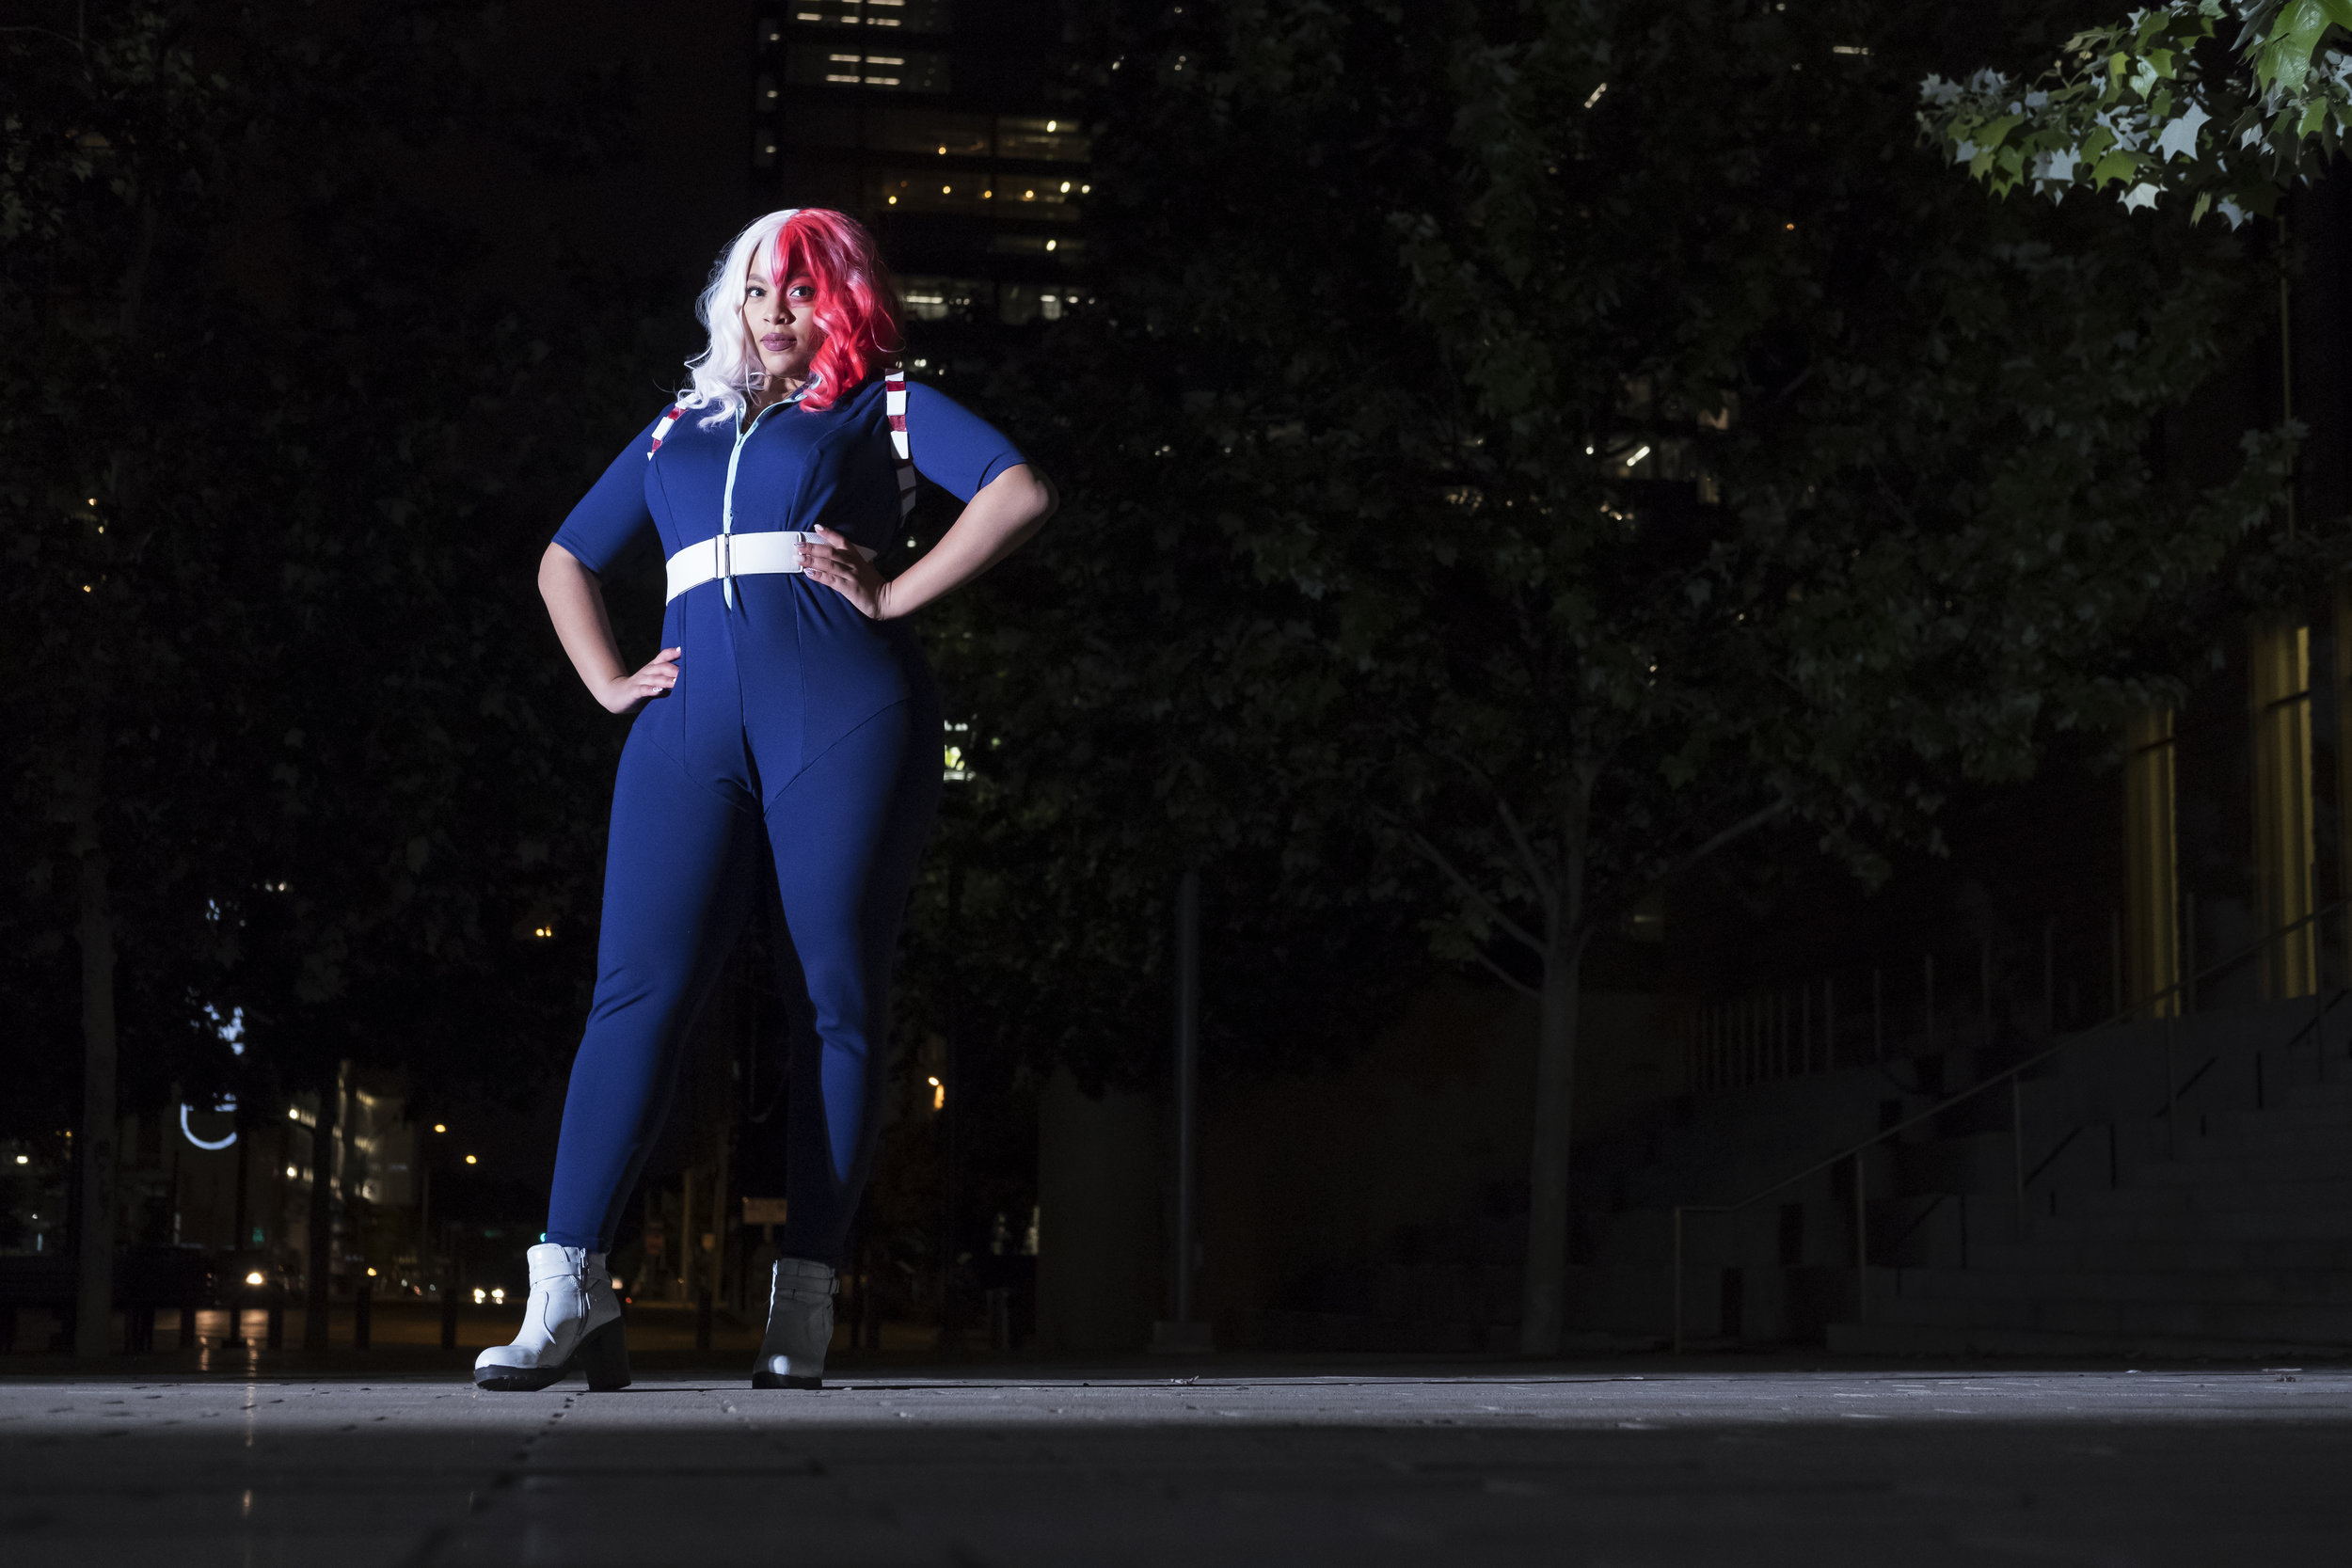 Sonia Blade in Shoto Todoroki cosplay in downtown Austin